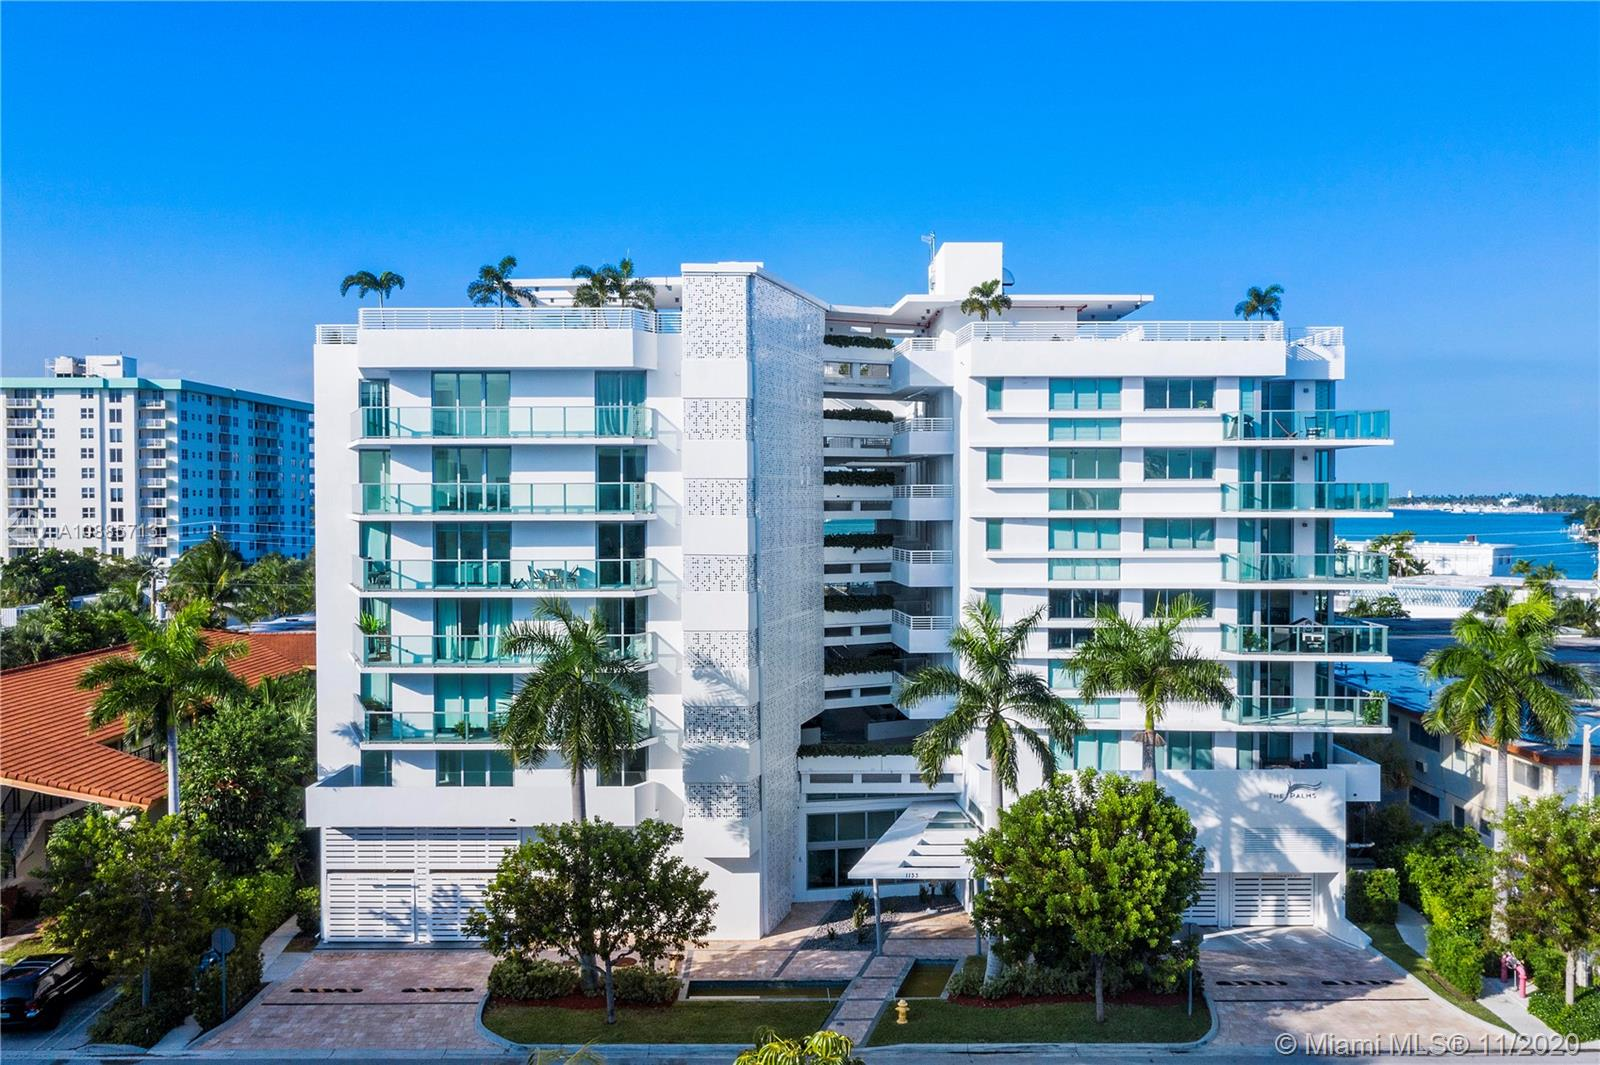 Built in 2018, this luxury boutique style building is located in the perfect location. Oversized corner unit has 1 bedroom and 2 full bathrooms. Modern kitchen with European stainless steel appliances, floor to ceiling impact windows, tile throughout, washer and dryer inside, built in wine cooler. Gorgeous views from the balcony and the rooftop infinity pool and hot tub. Unit comes with 2 assigned parking spaces with a private storage room located on the 6th floor. Walking distance to shopping, places of worship, and A+ Bay Harbor K-8 Education Center. Great for investment opportunity. Unit is currently rented at $2250 per month through June 21, 2021. 24 Hour notice needed to show.